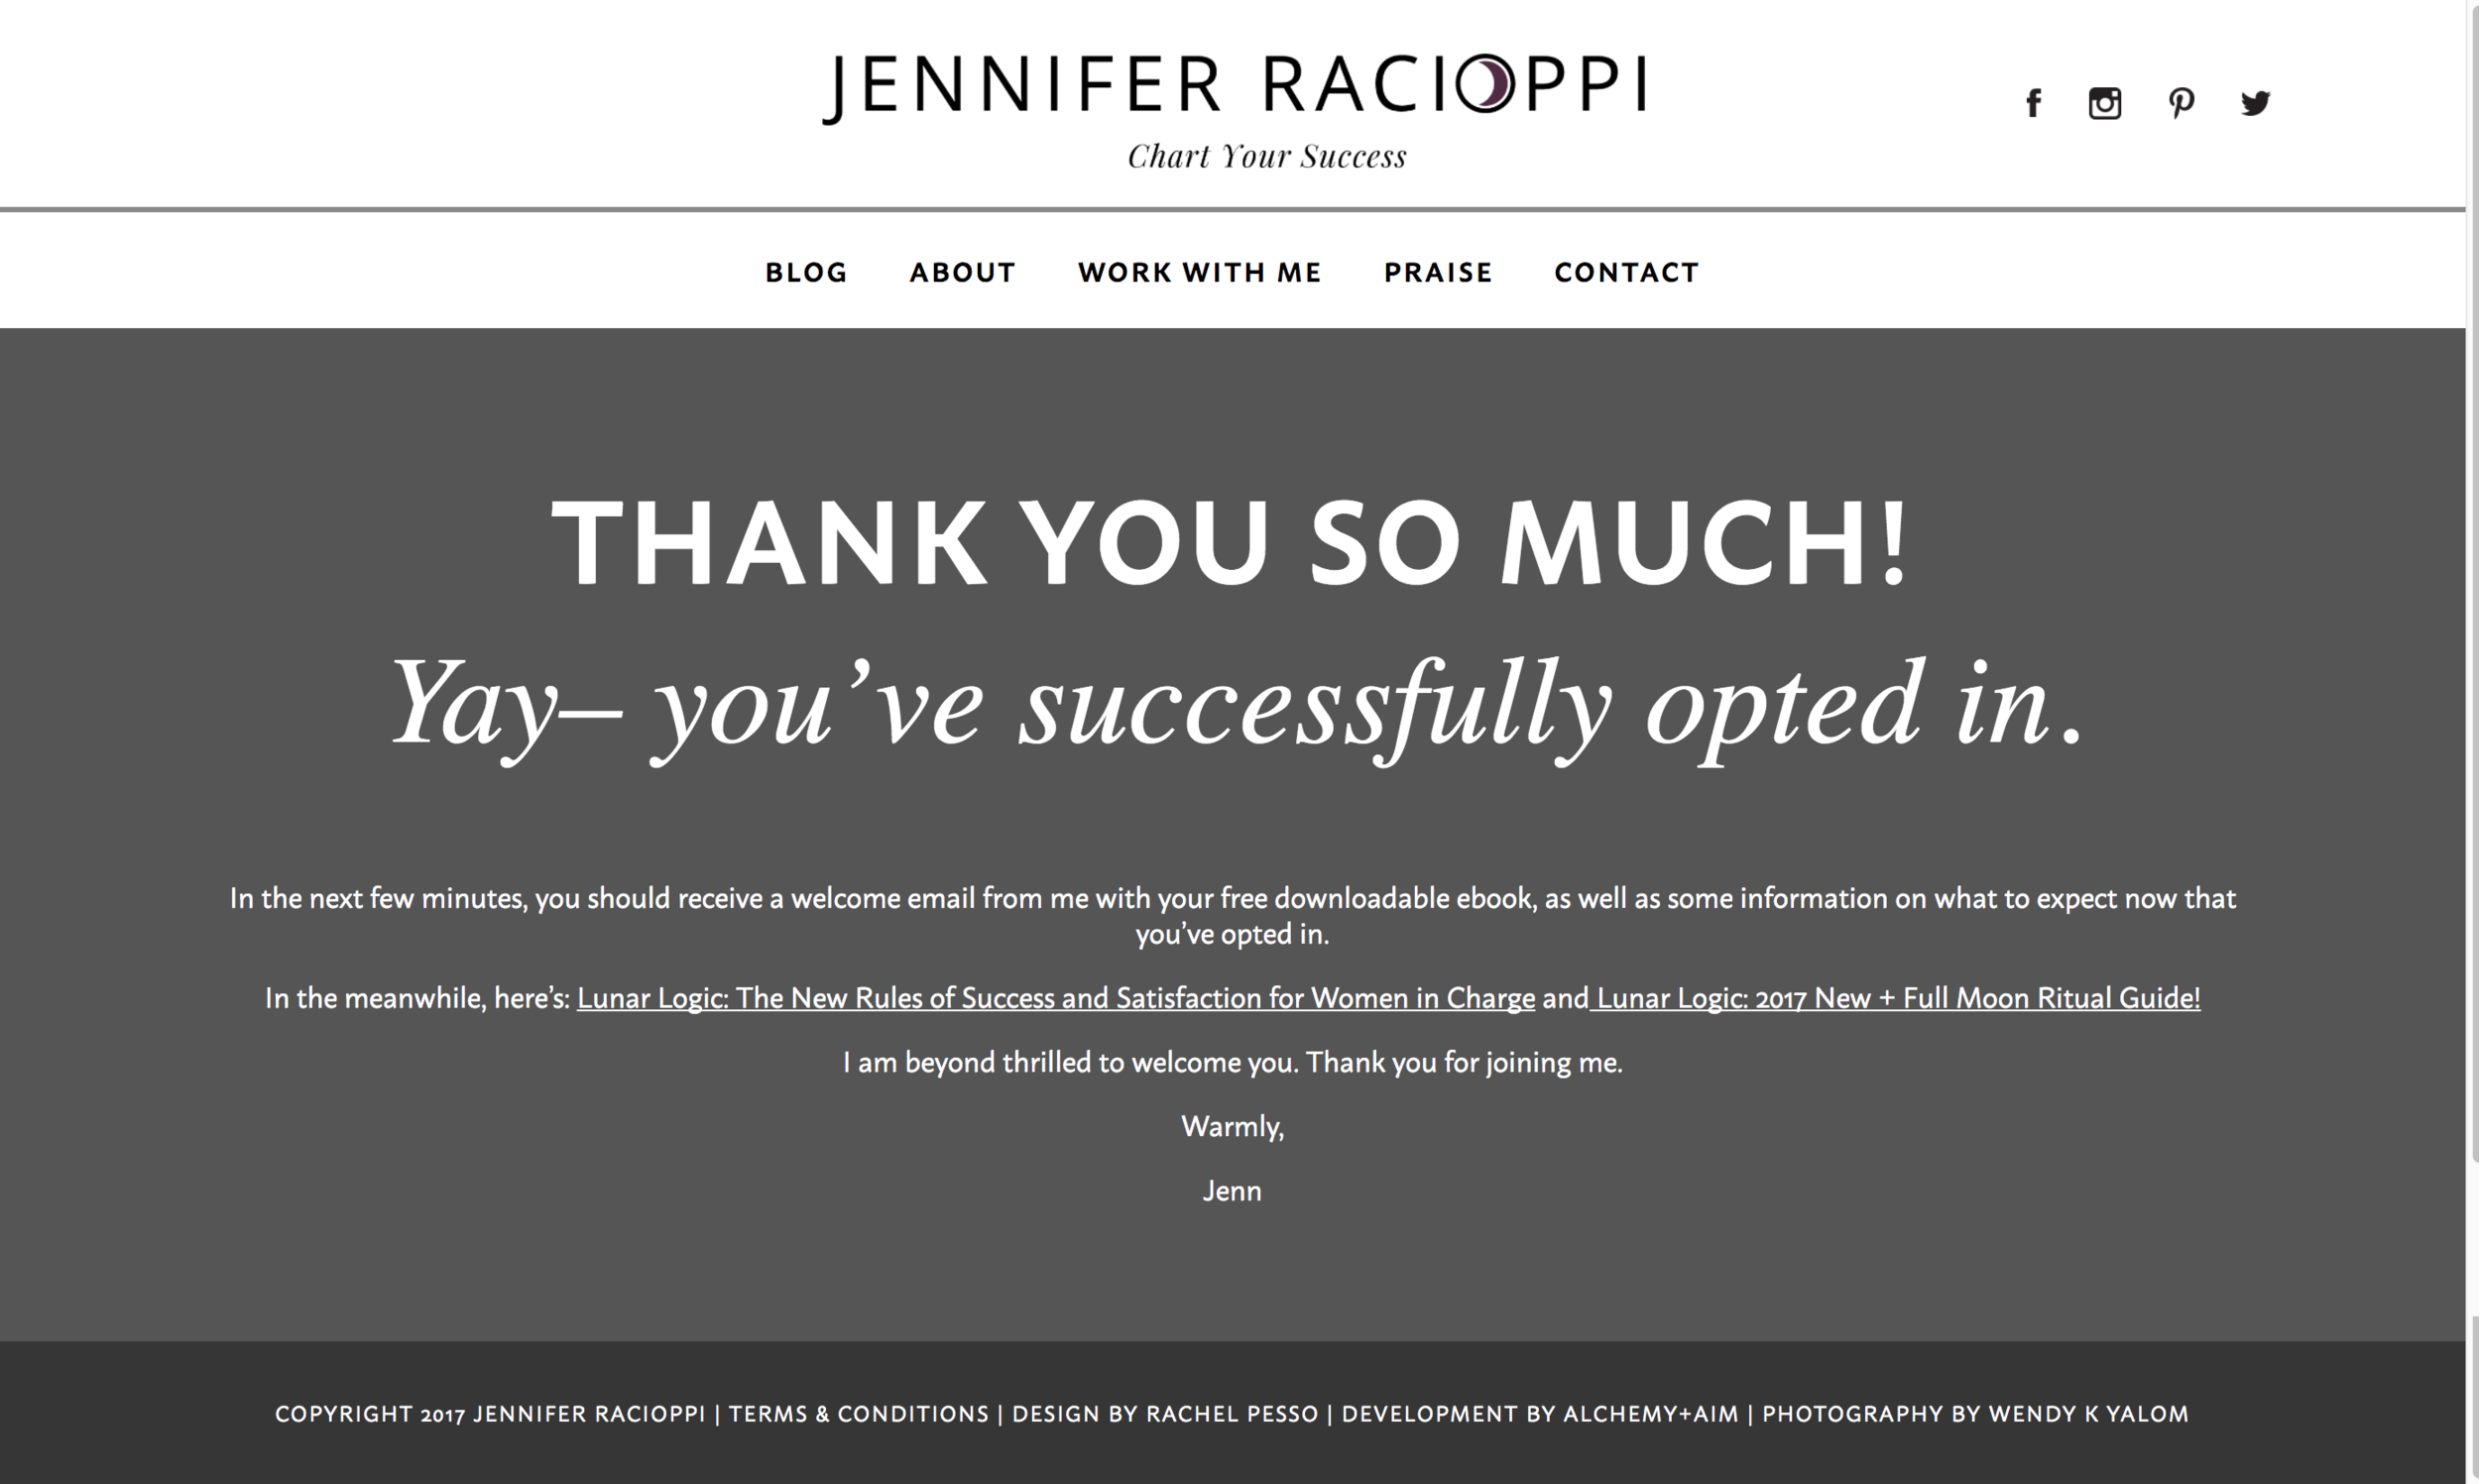 Jennifer Racioppi's Thank You page is casual and brief.